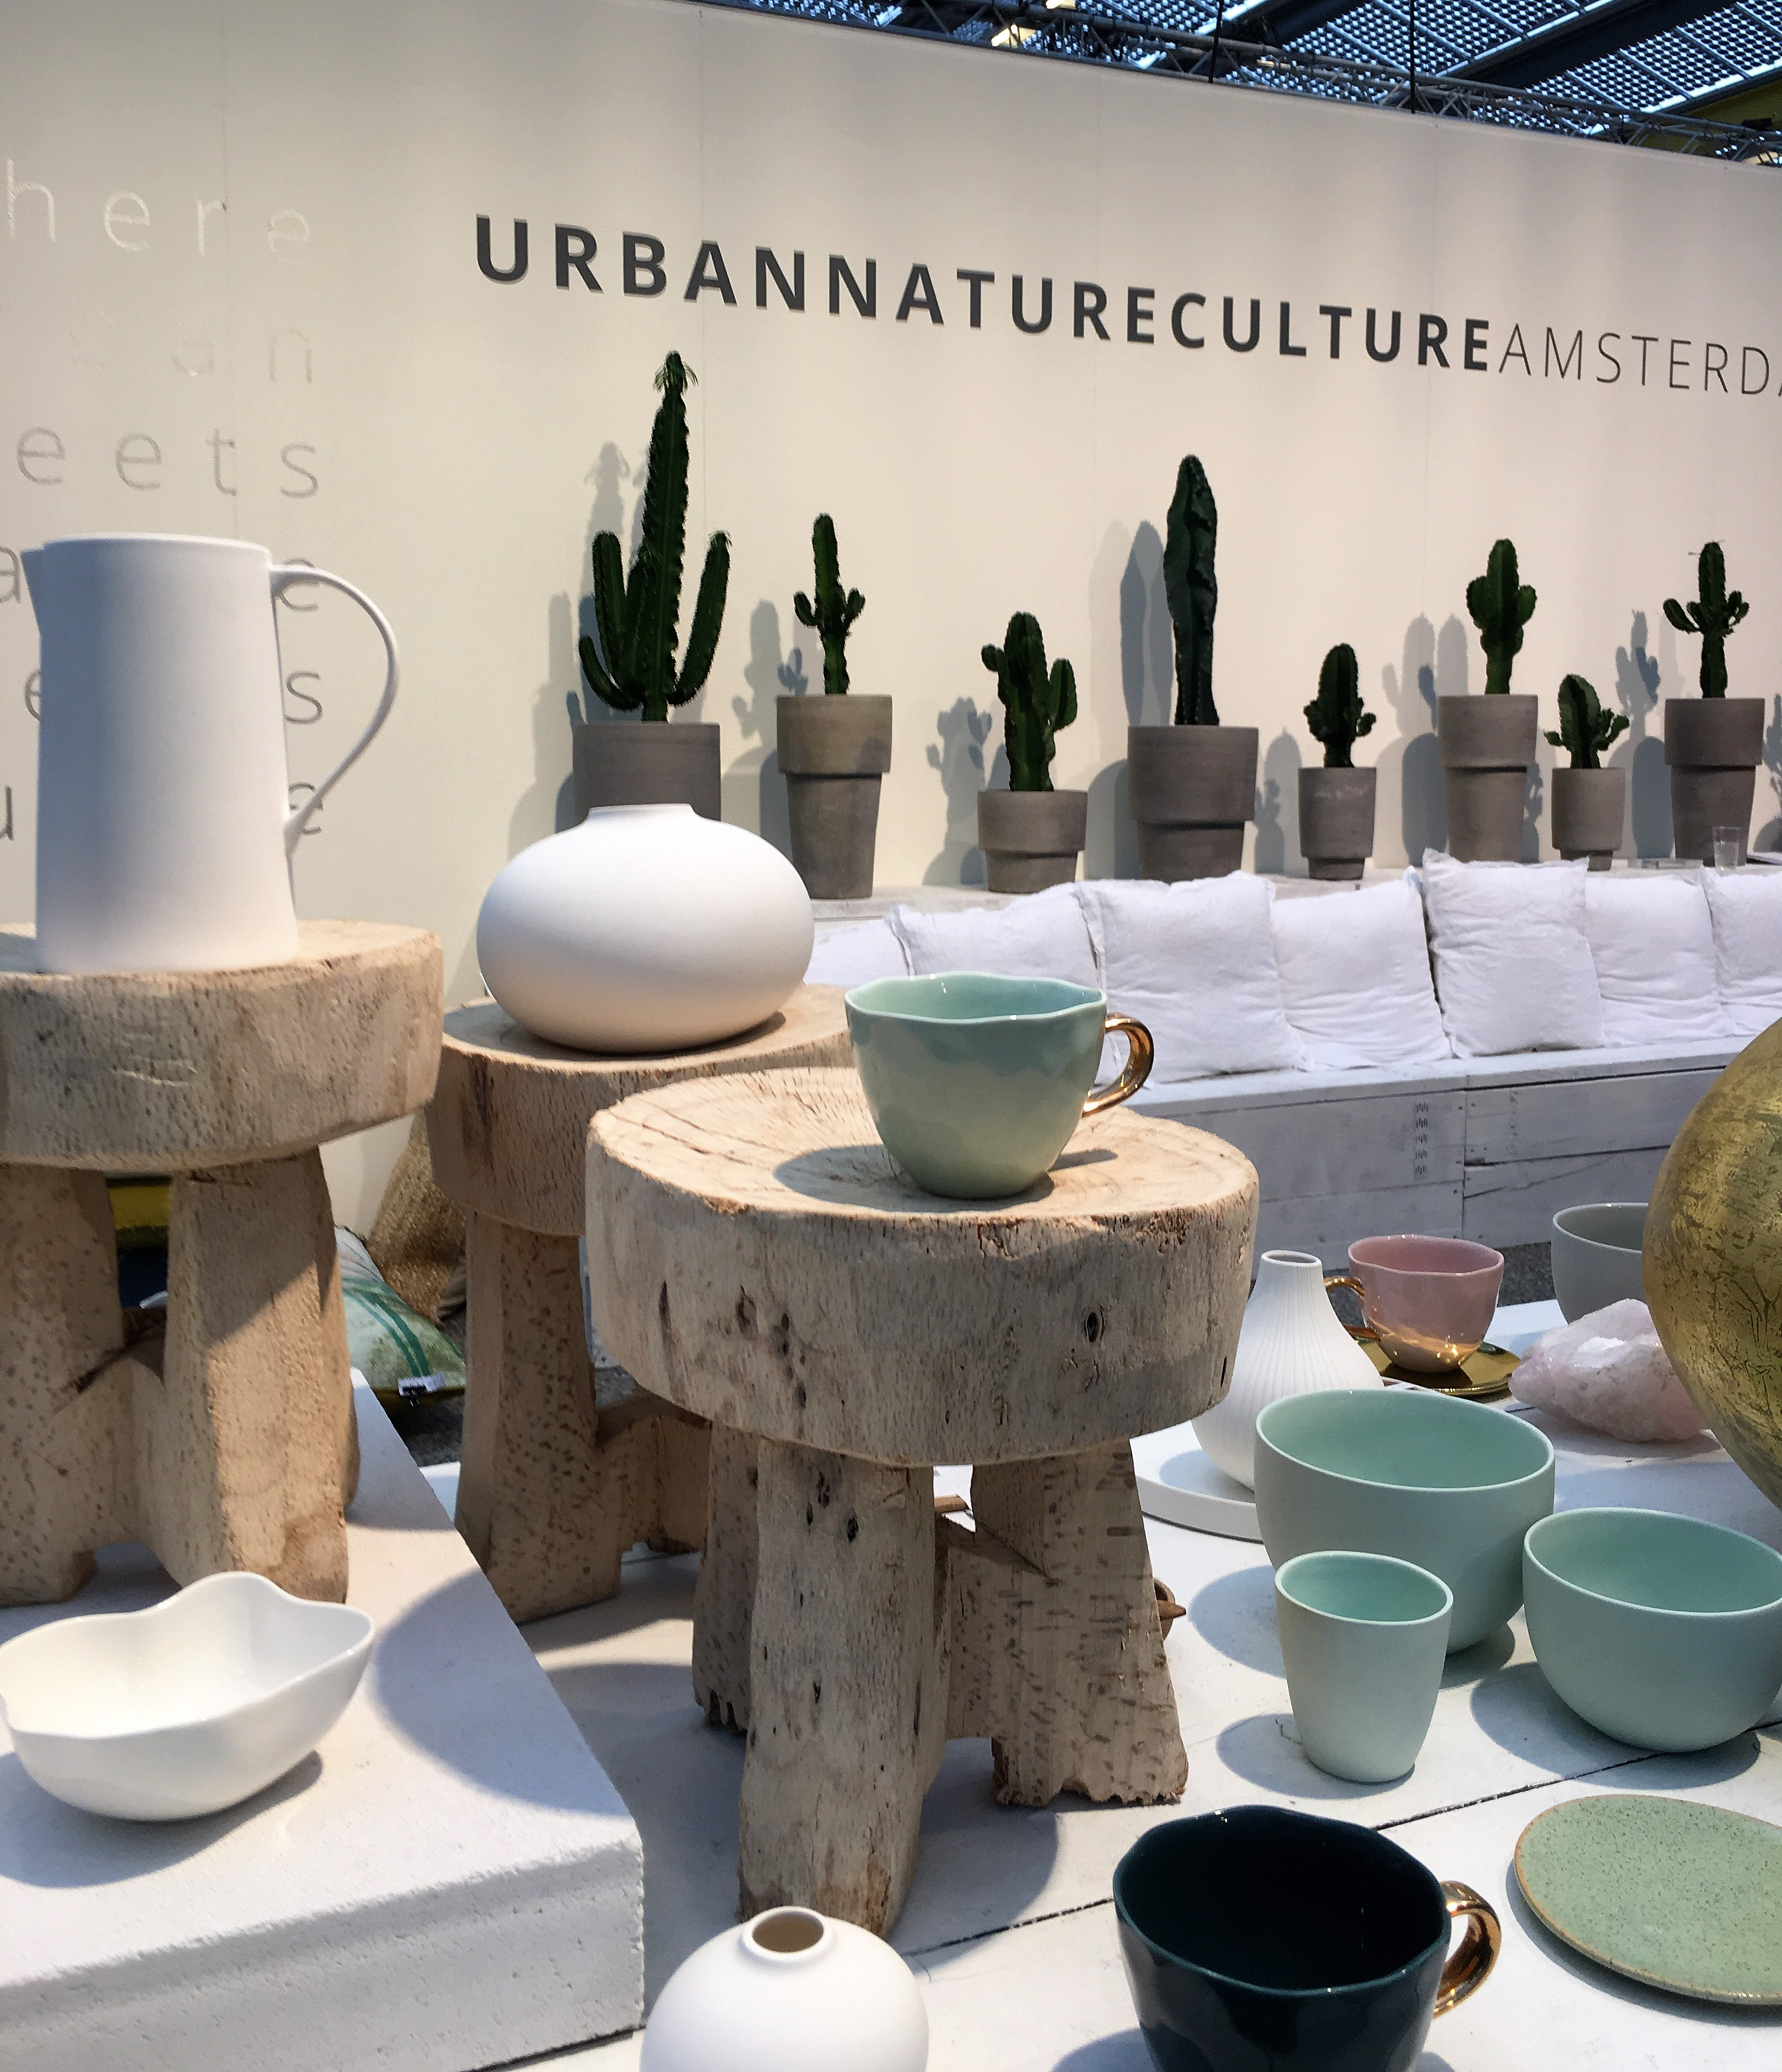 Urban Nature Culture at ShowUP 2017